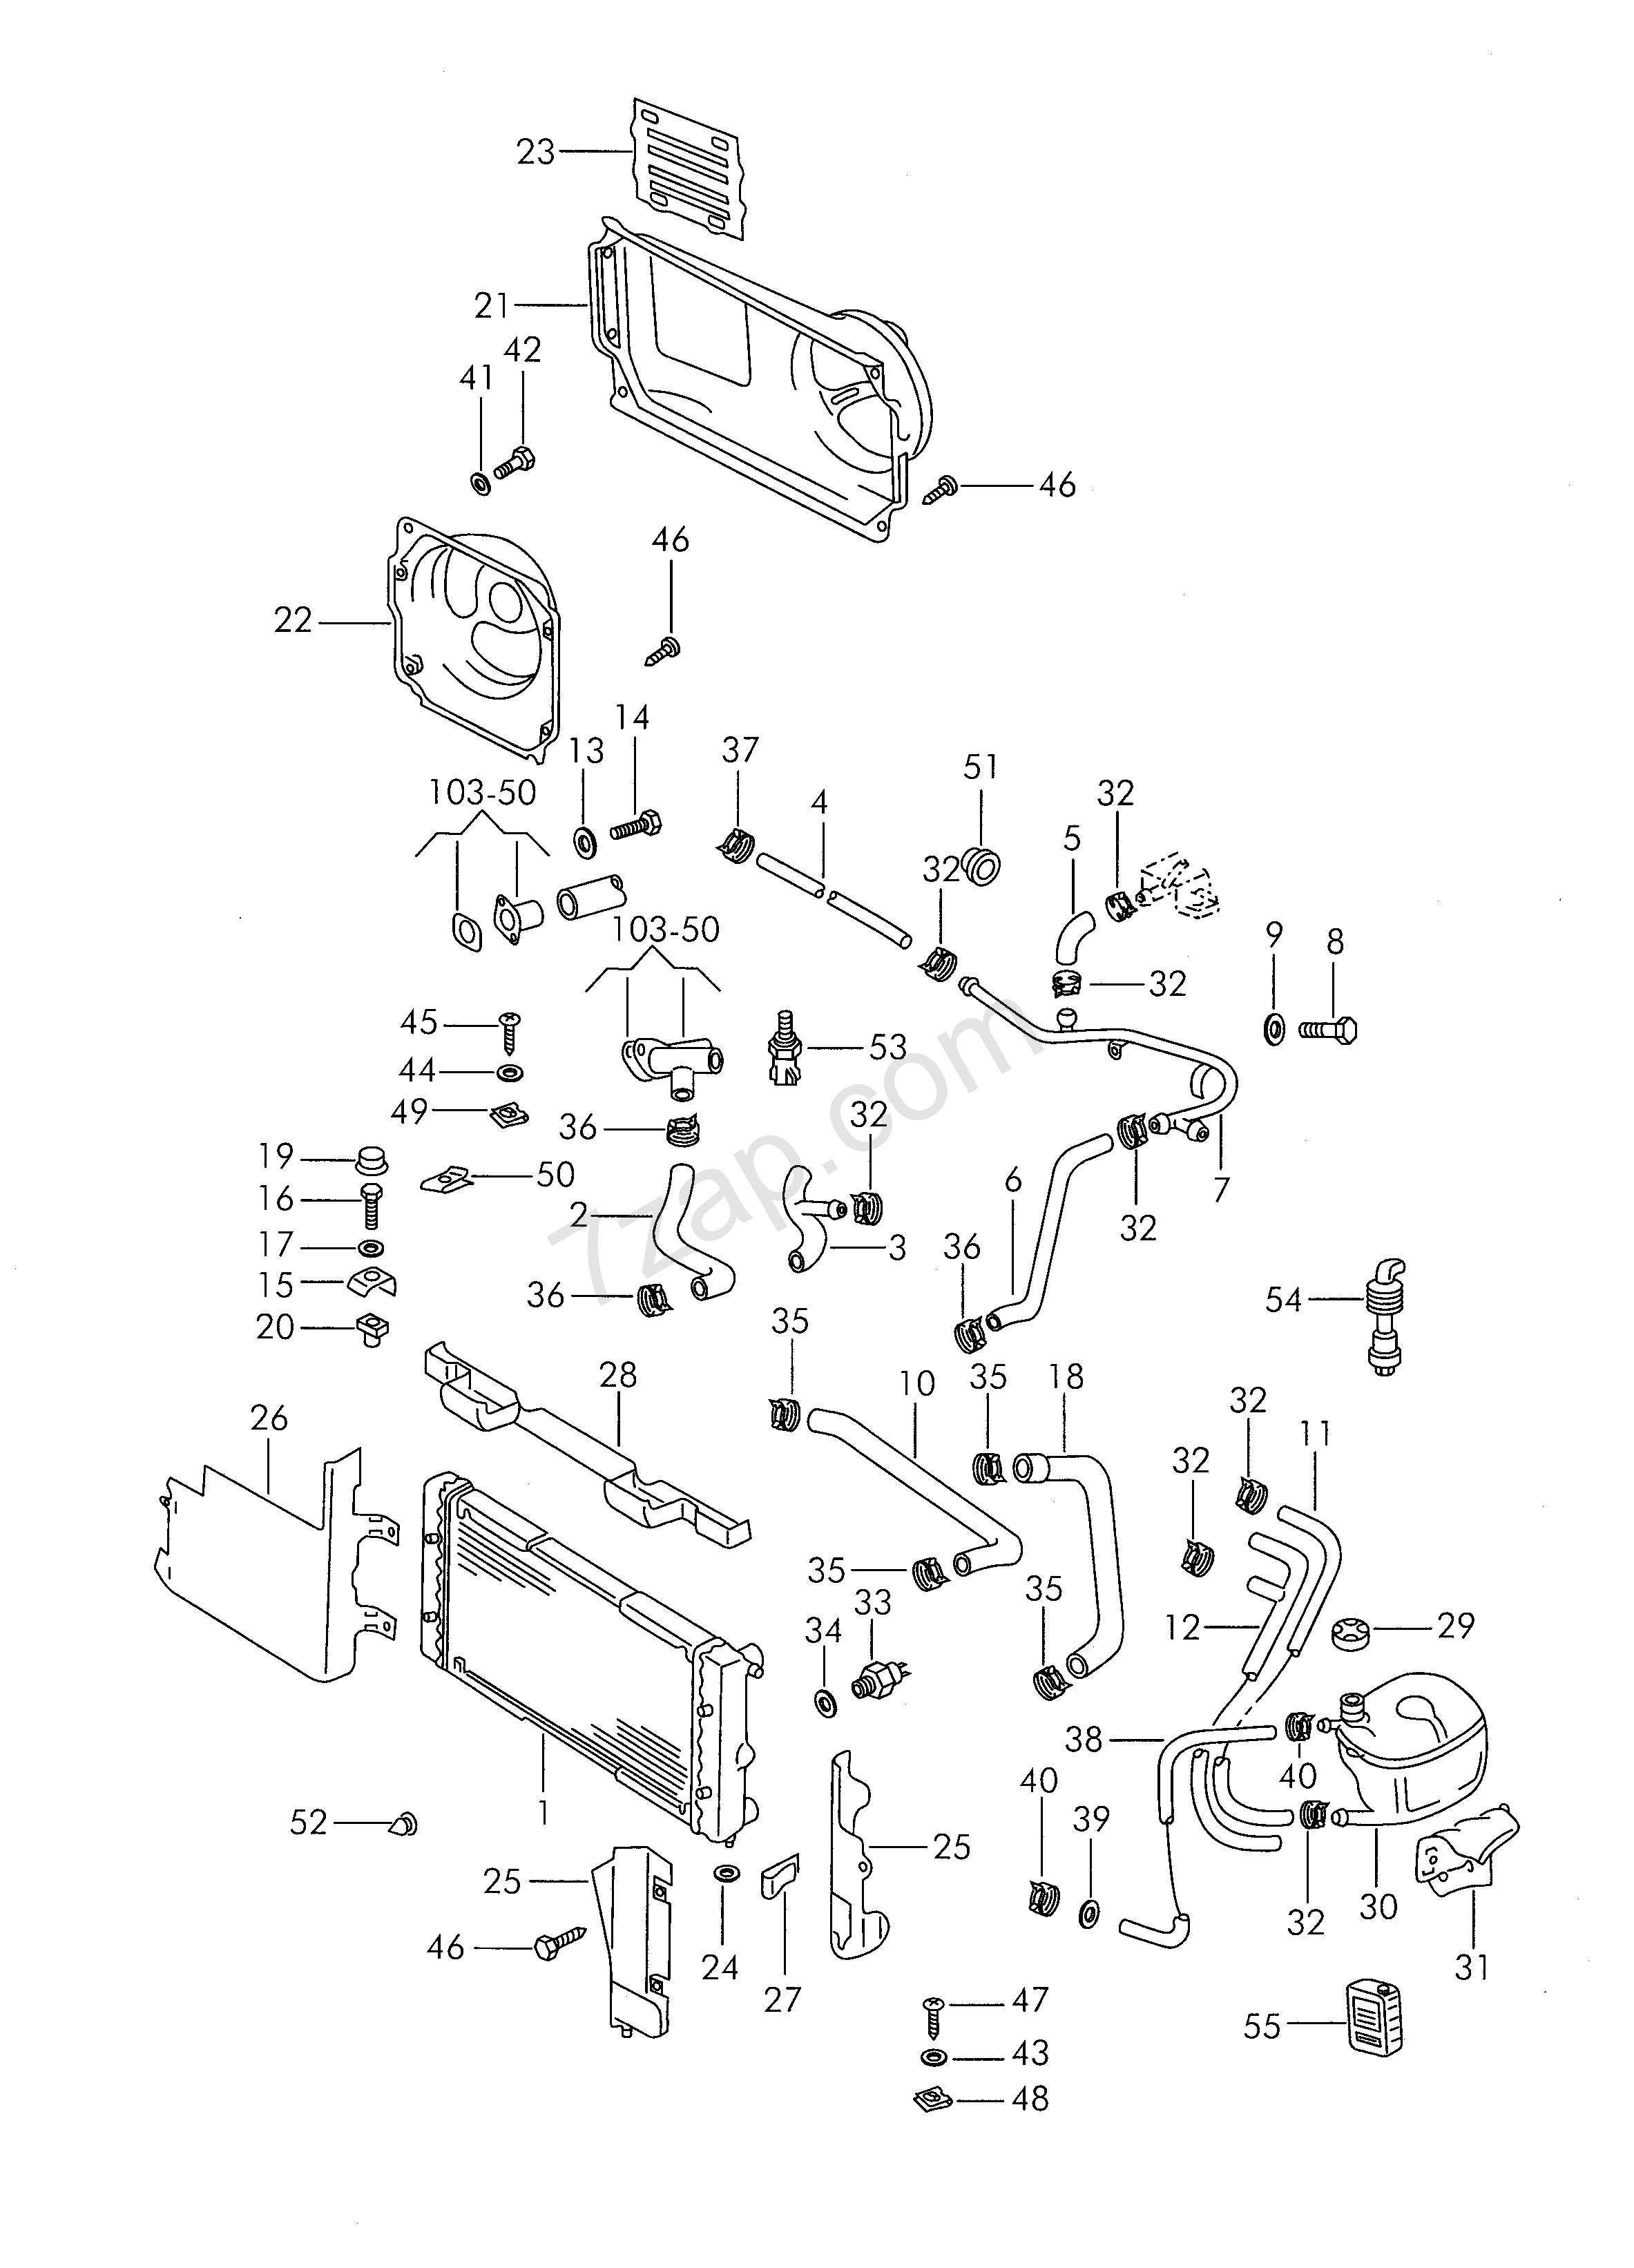 Vw Cooling System Diagram 1989 Electrical Wiring Diagrams 2002 Cabrio 2 0 Engine Coolant Santana San Year Volkswagen Brazil 121045 Jetta